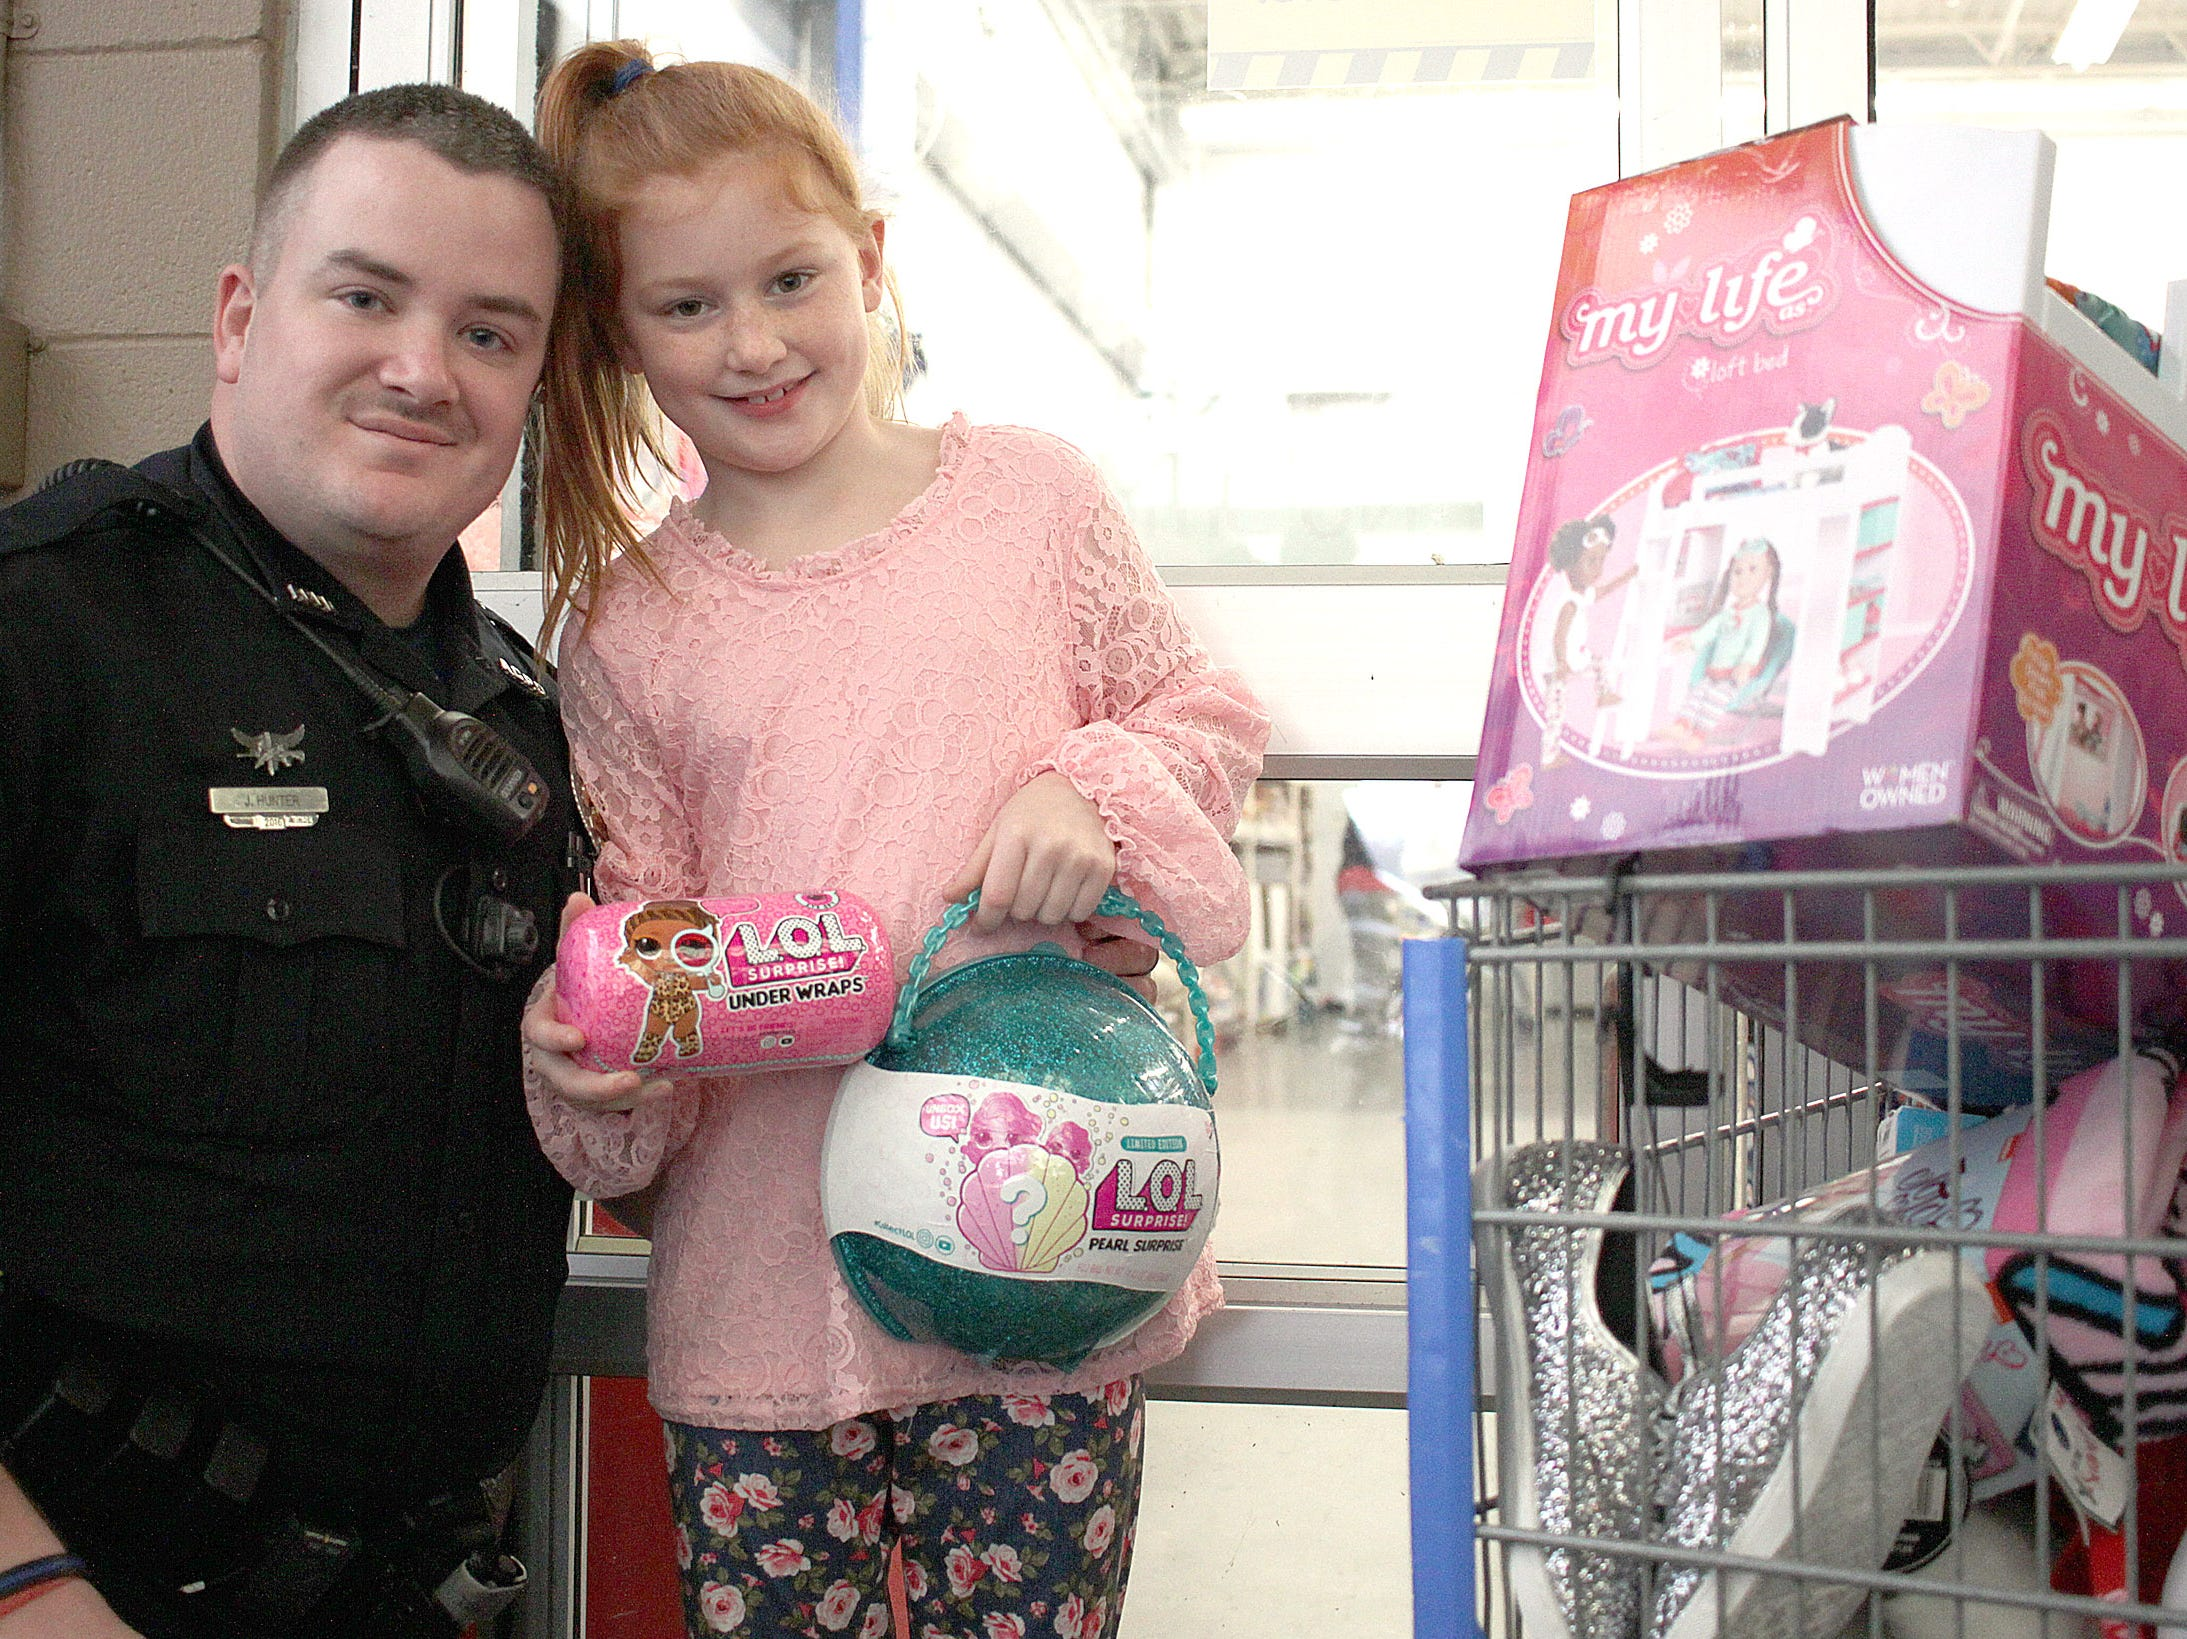 Officer Nick Hunter and Abigail Byrd have some LOL dolls as they get in line at Shop with a Cop in Ashland City on Saturday, December 15, 2018.